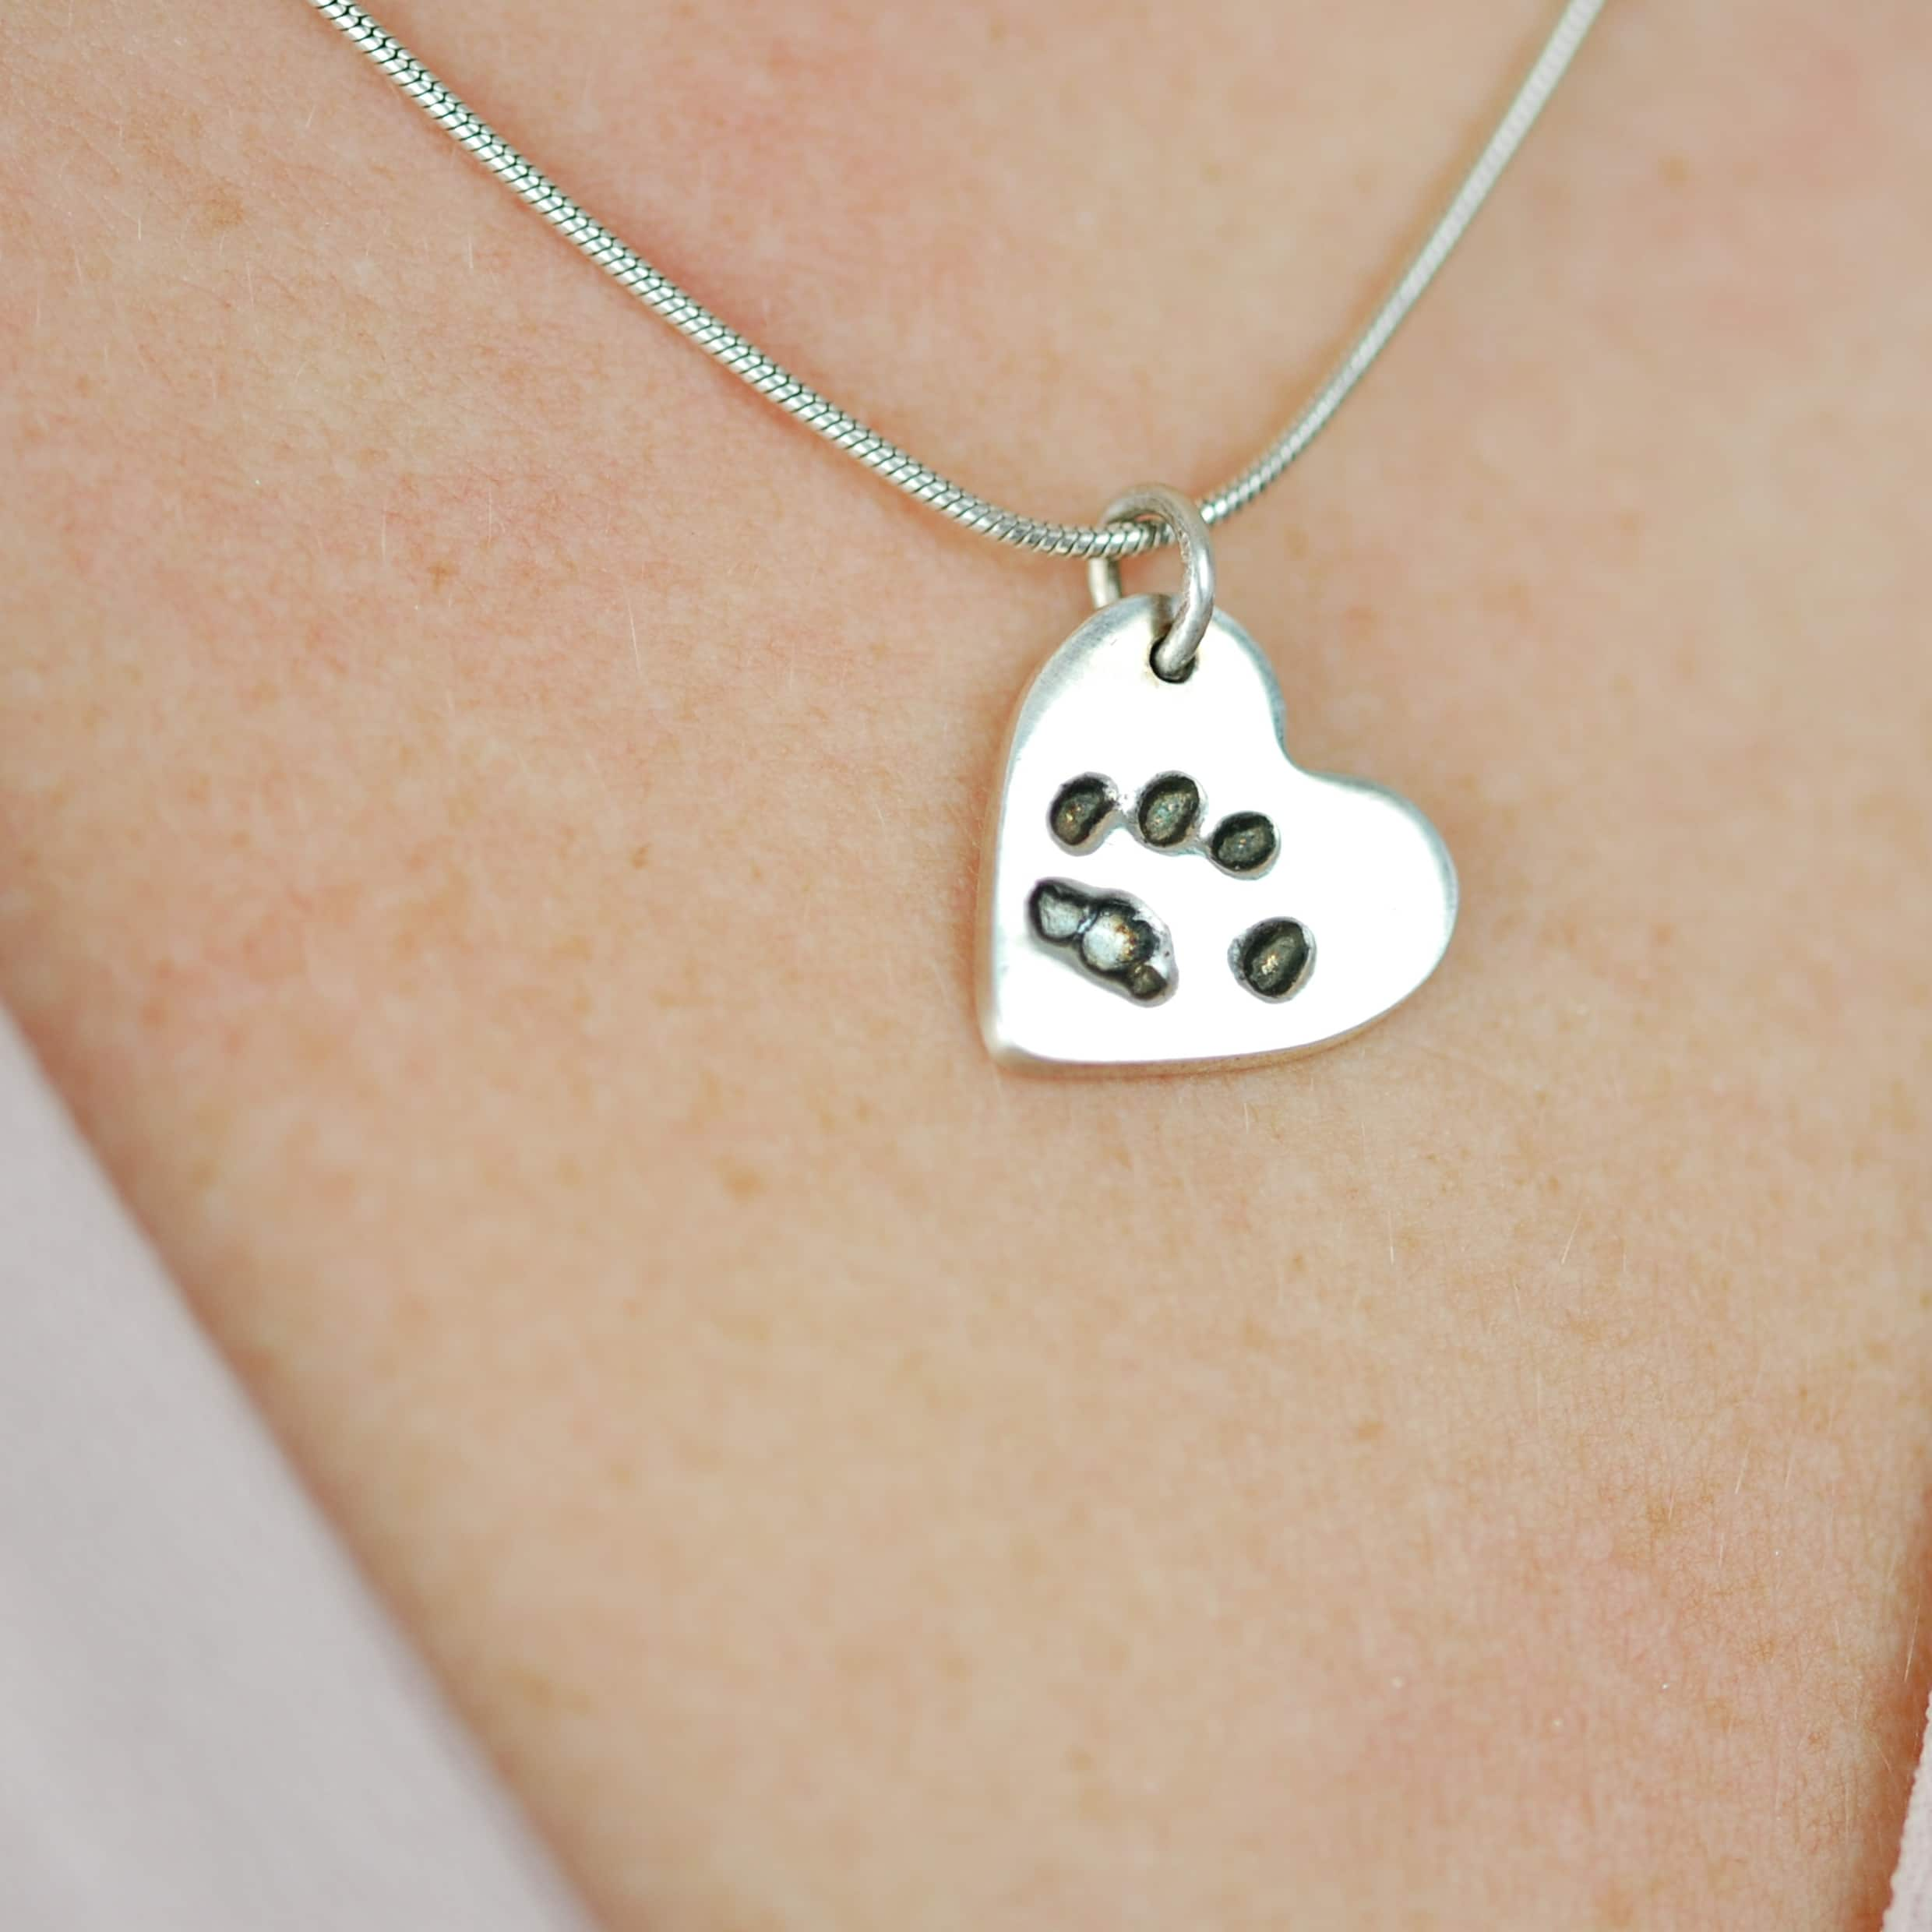 Small silver heart paw print charm on a snake chain